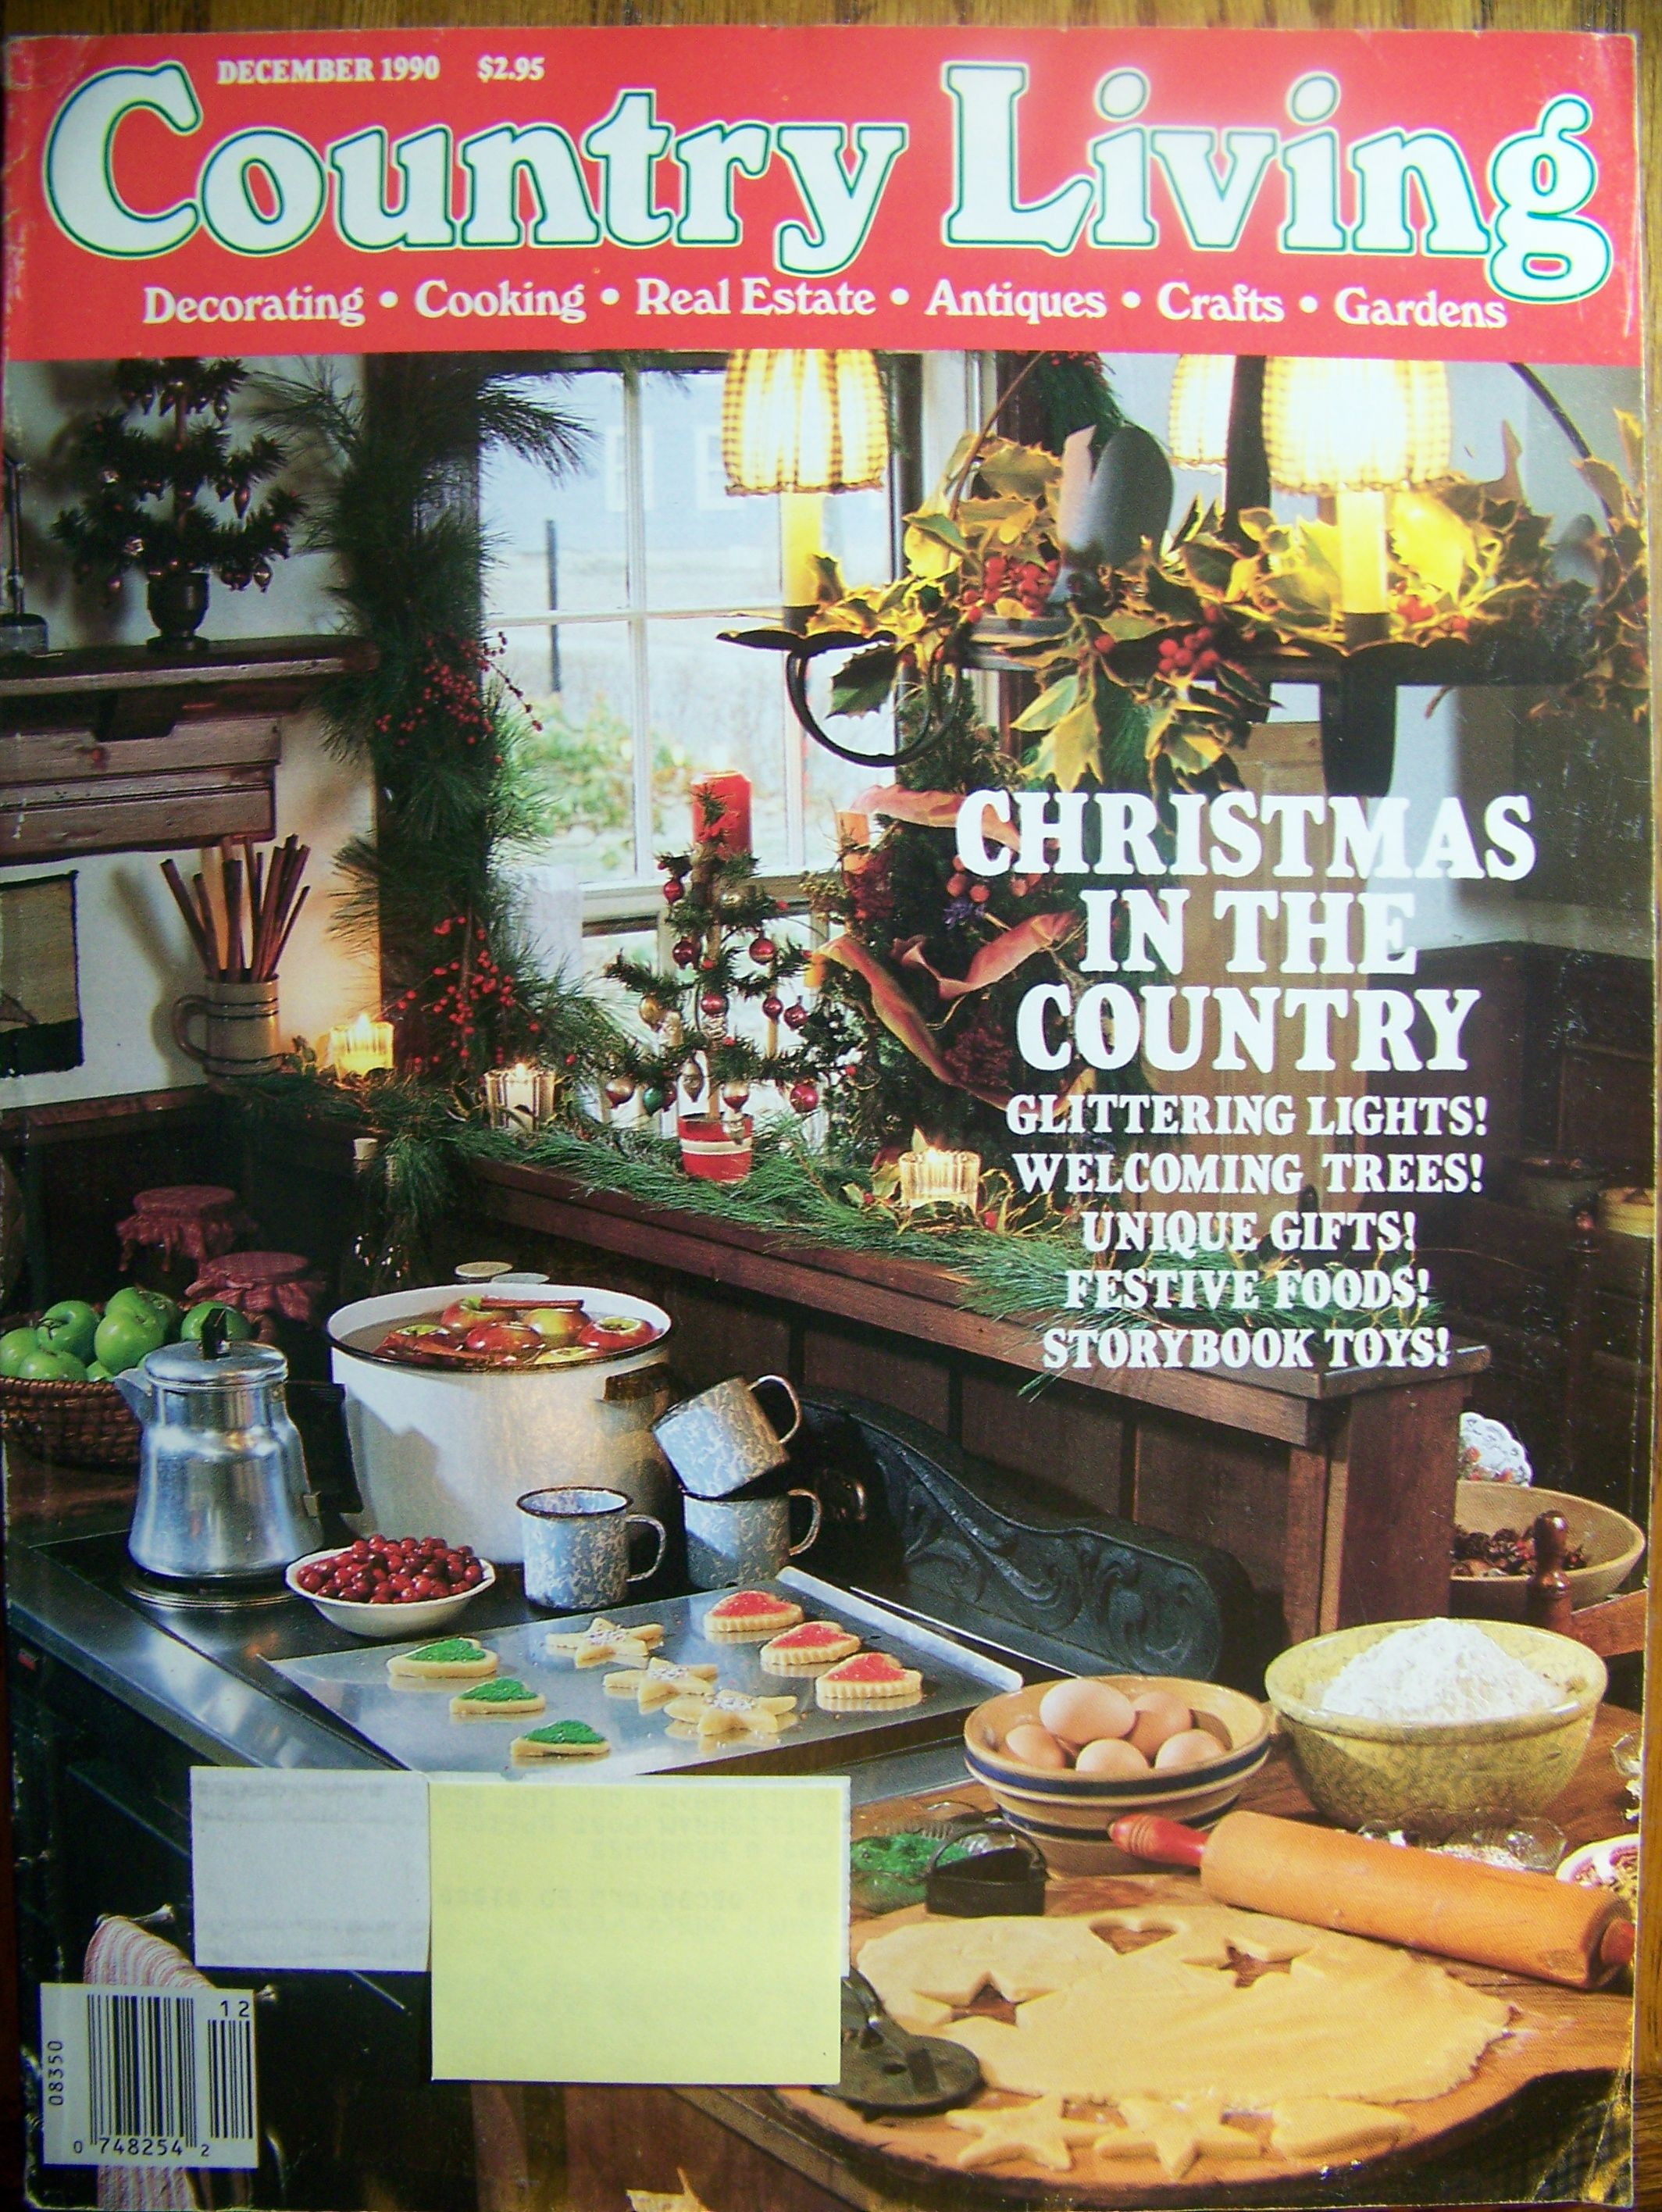 Country Living USA December 1990. (With images